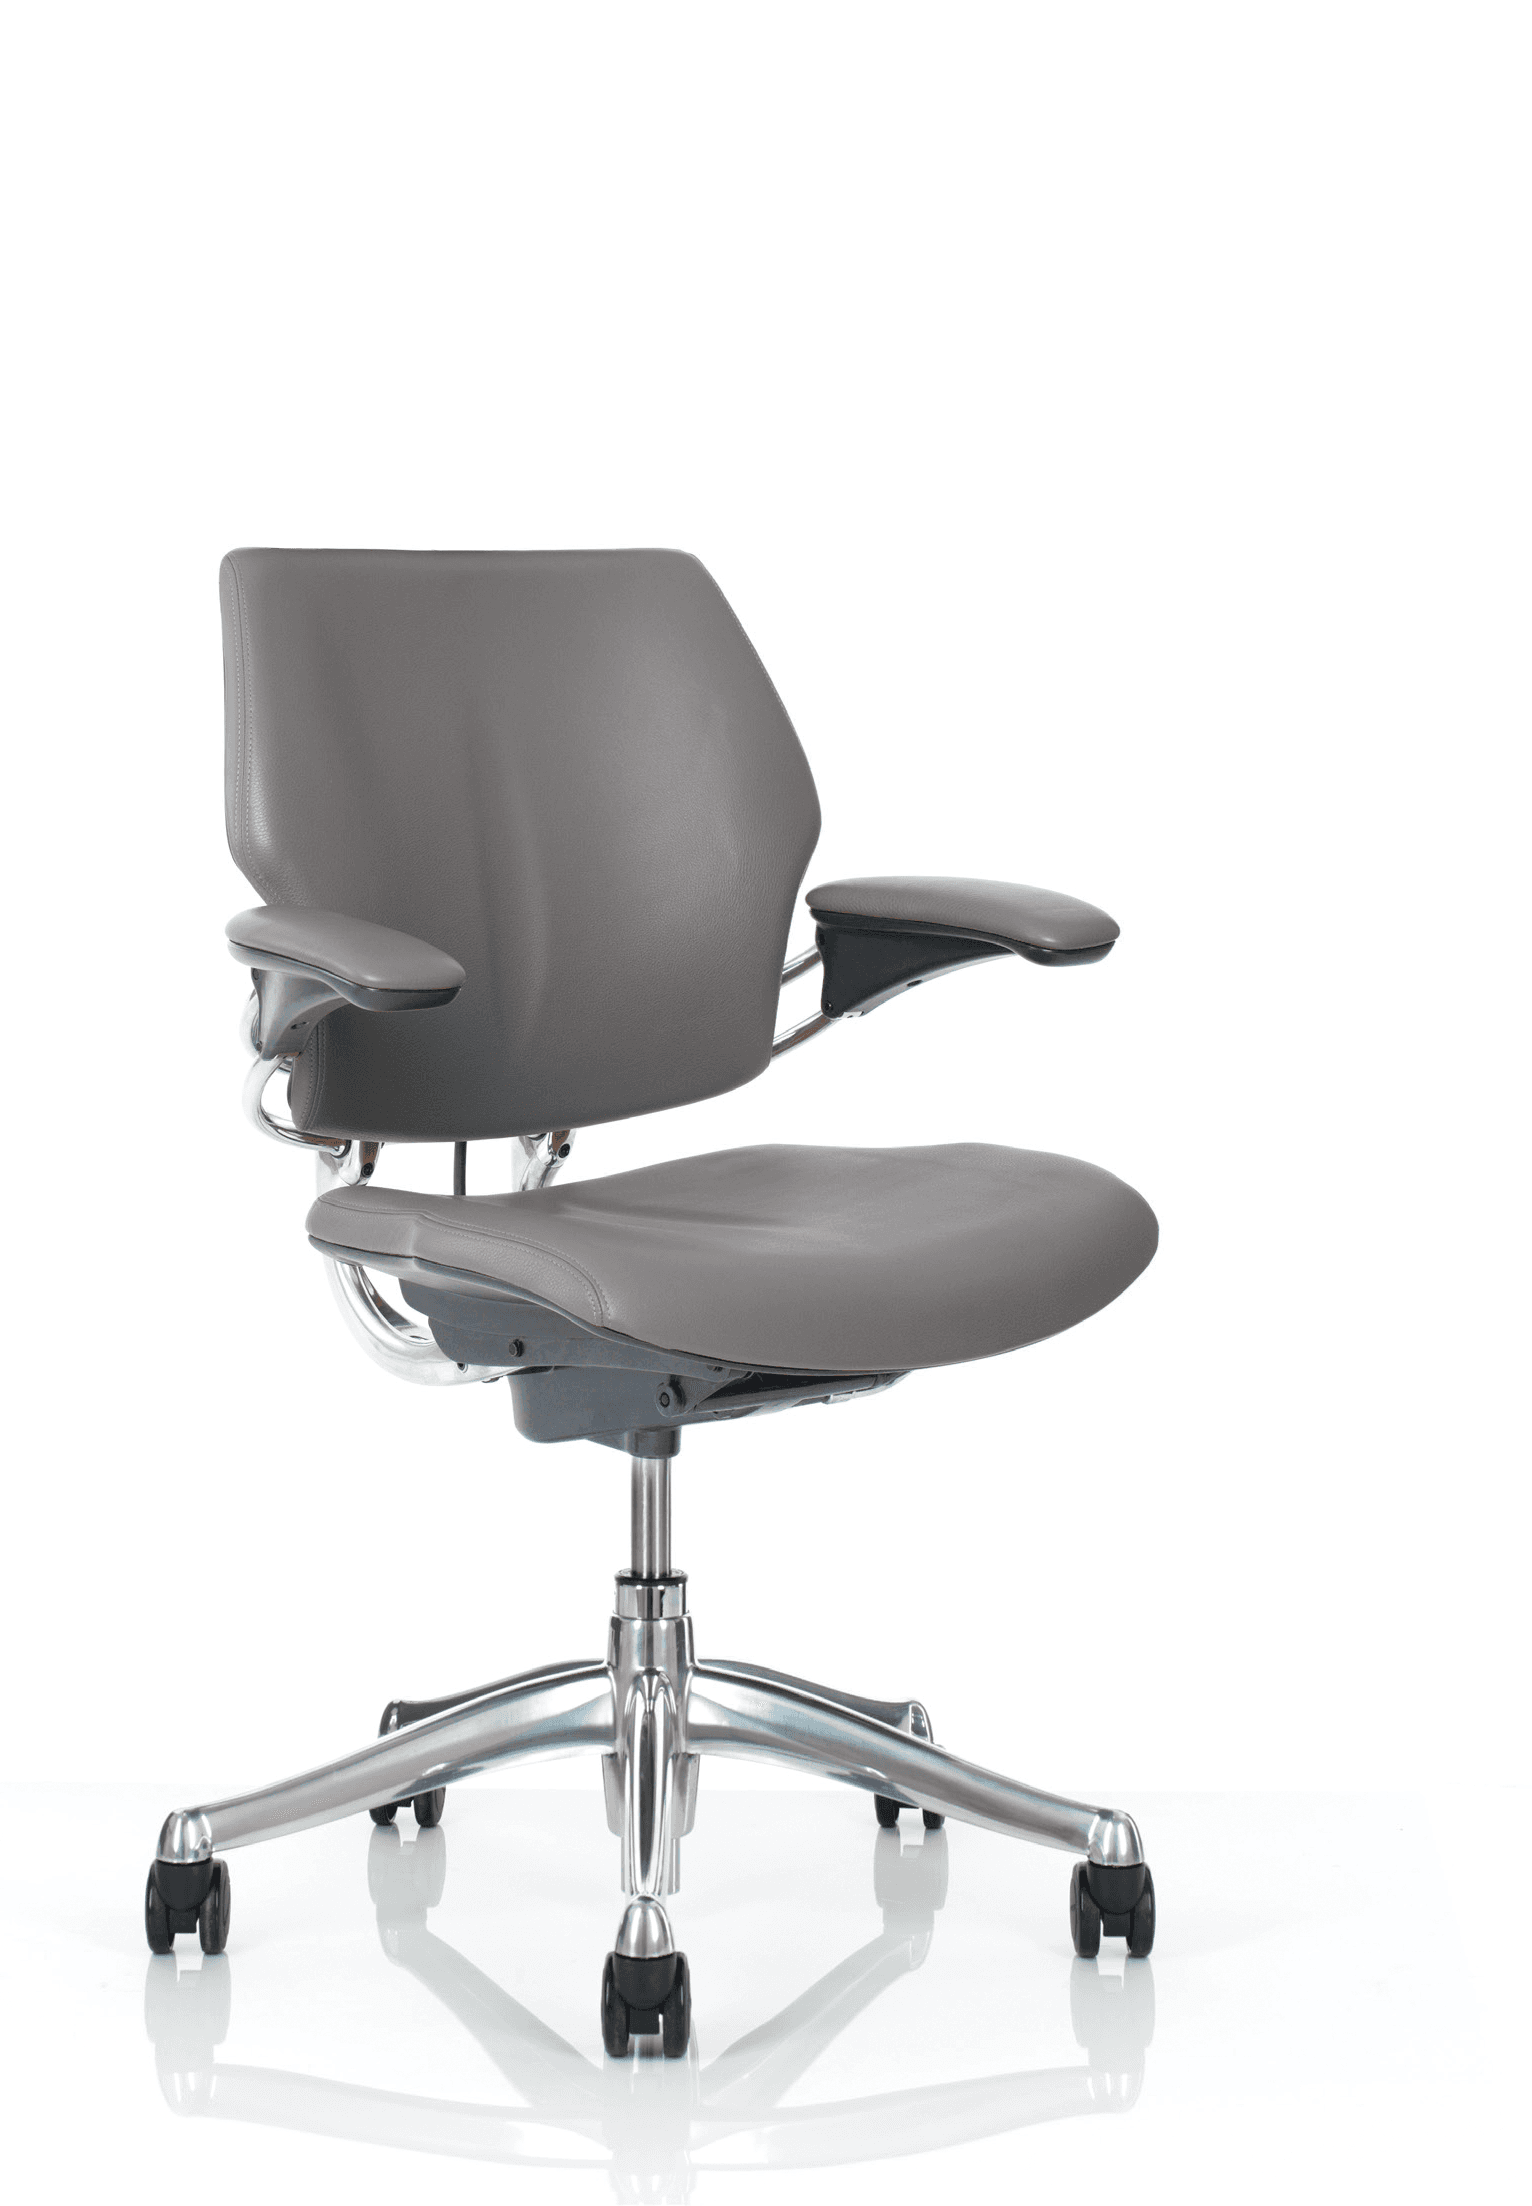 Humanscale Seating Evosite Control Rooms